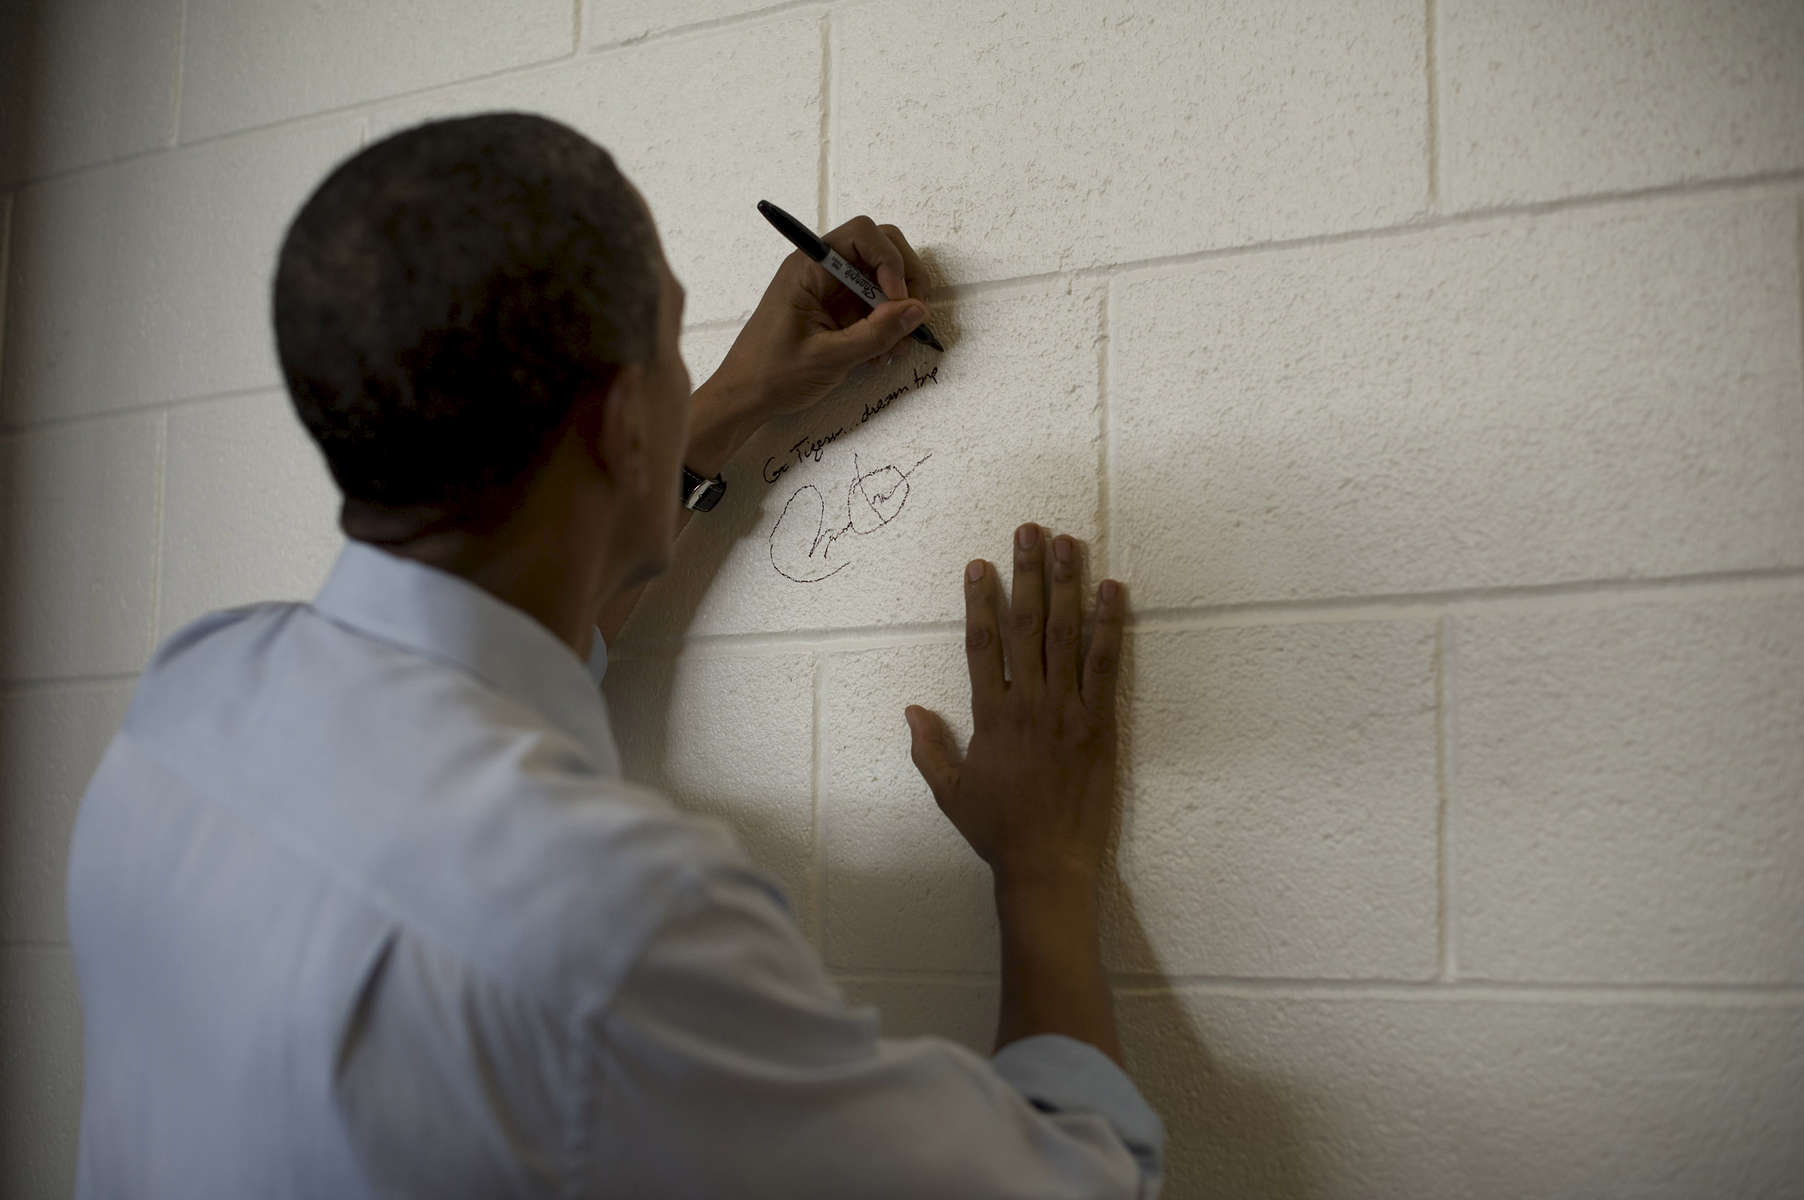 August 8, 2012- GRAND JUNCTION, CO: President Barack Obama signs the wall of Grand Junction High School, as is the school's tradition for distinguished guests, after a rally in Grand Junction, CO on August 8th, 2012. (Scout Tufankjian for Obama for America/Polaris)